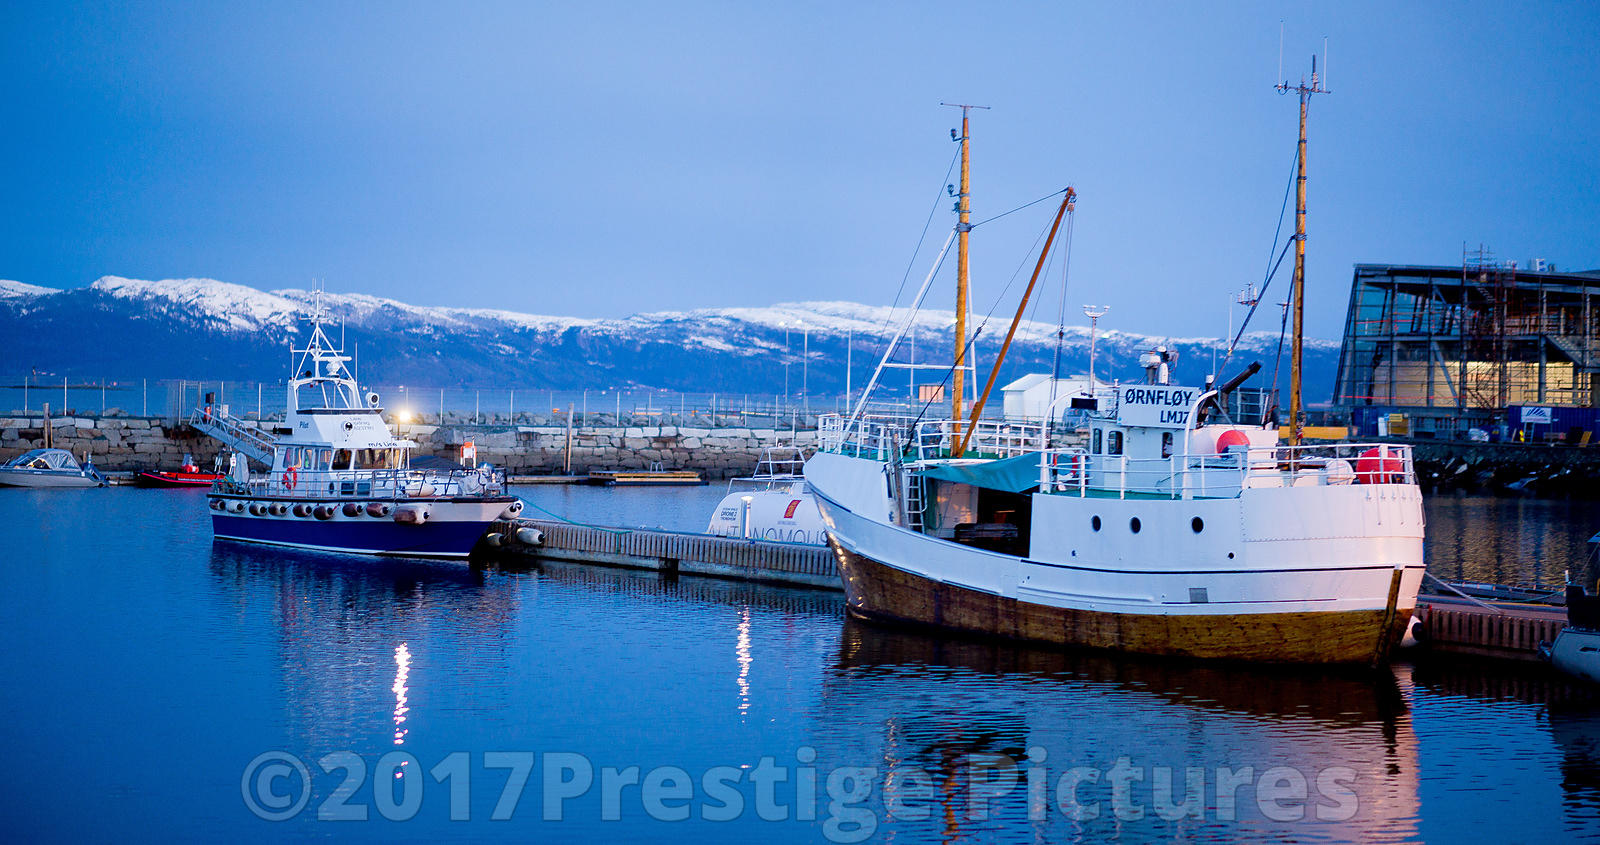 Boats in the Marina in Trondheim with snow Capped Mountains Behind - Norway The Monte-Carlo Historique Rally 2018 - Banbury royalty free stock photo library